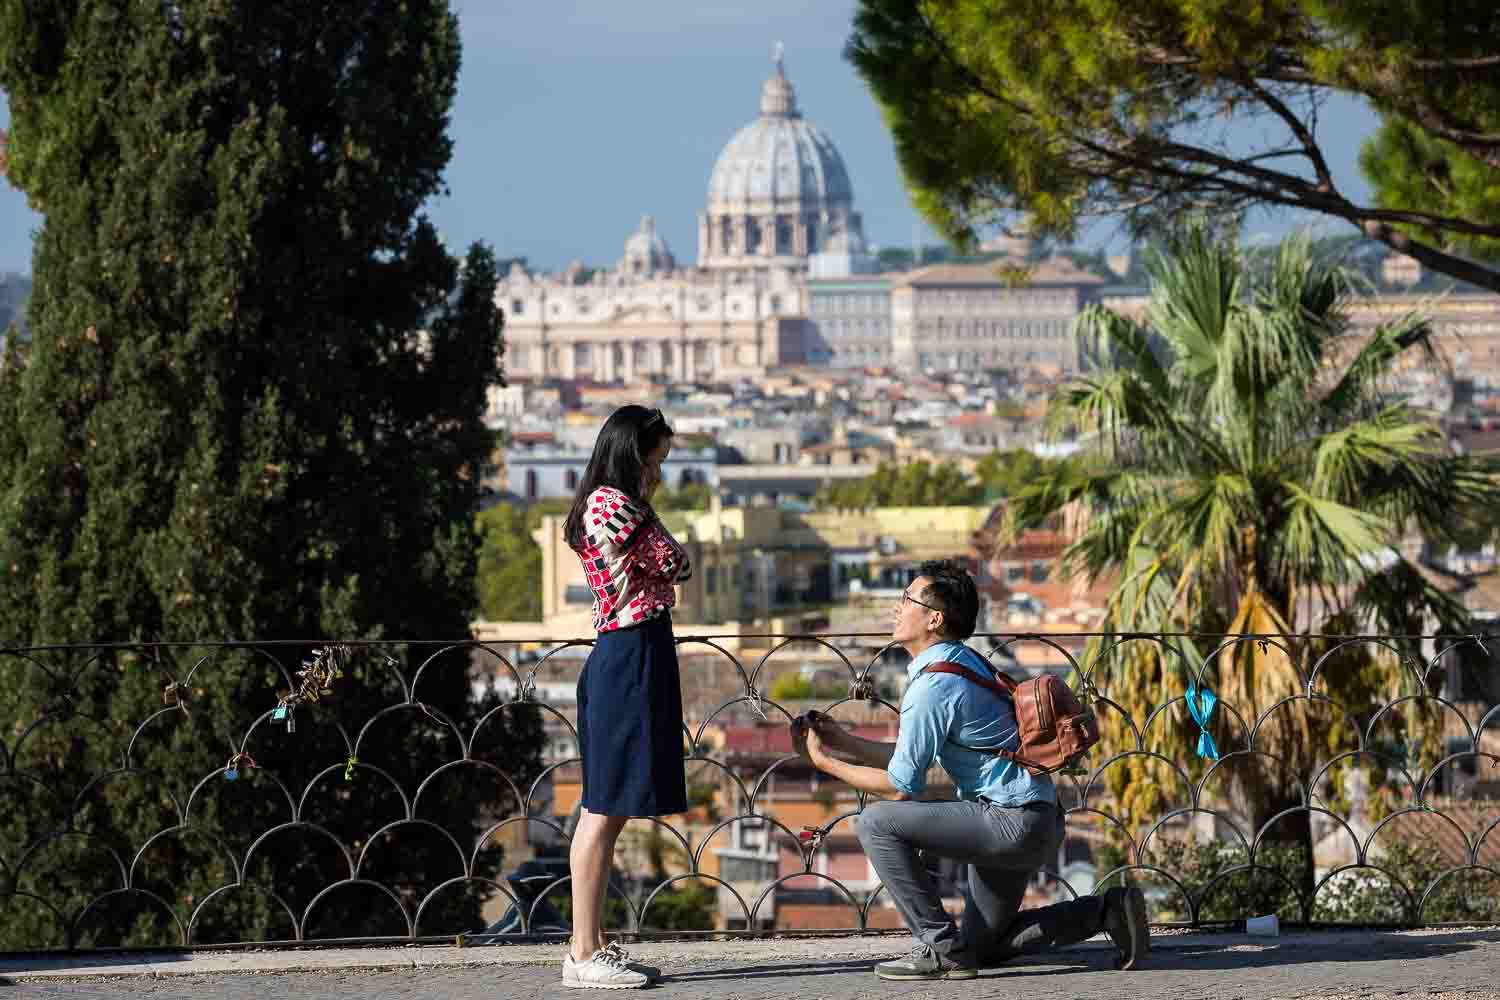 Man knee down proposing marriage before the scenic view of the Roman skyline and Saint peter's dome in the far distance